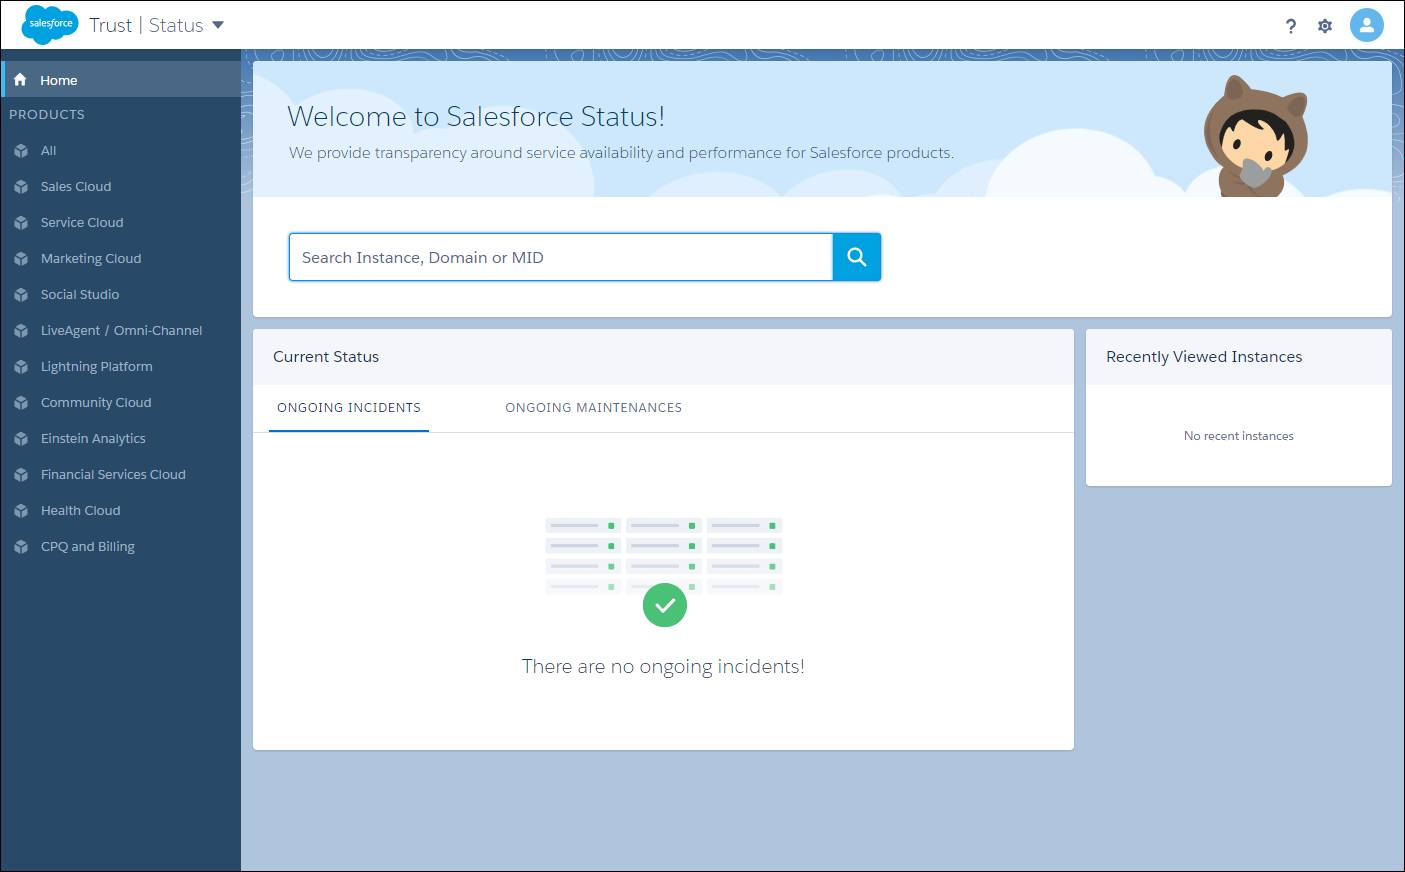 The Status page of the Salesforce Trust site.